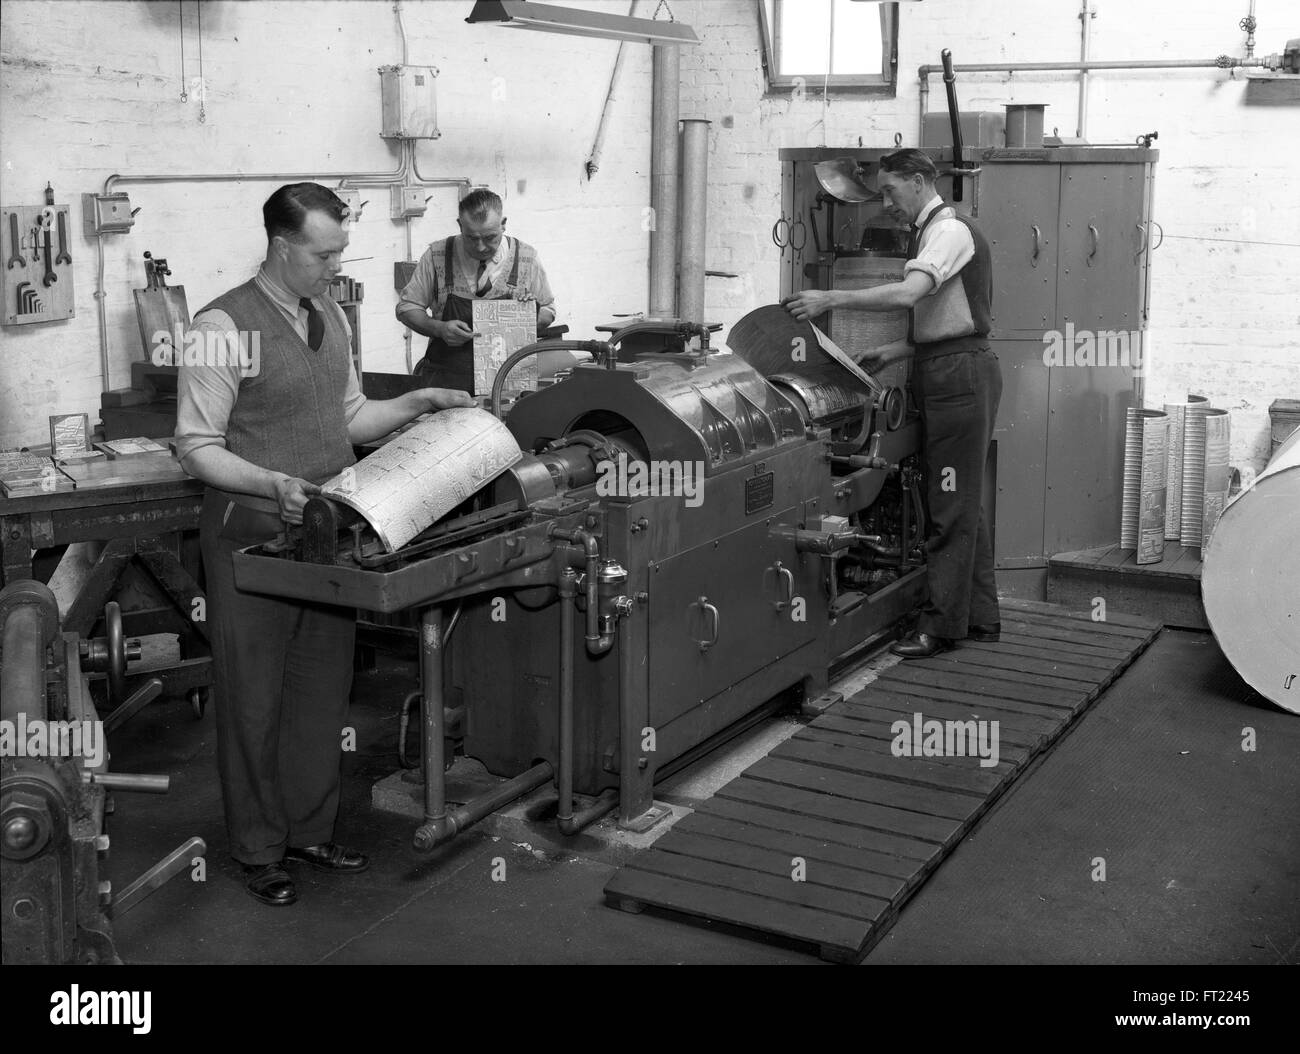 Newspaper production Britain 1960s 1950s newspapers staff print workers printers worker plate making history old - Stock Image